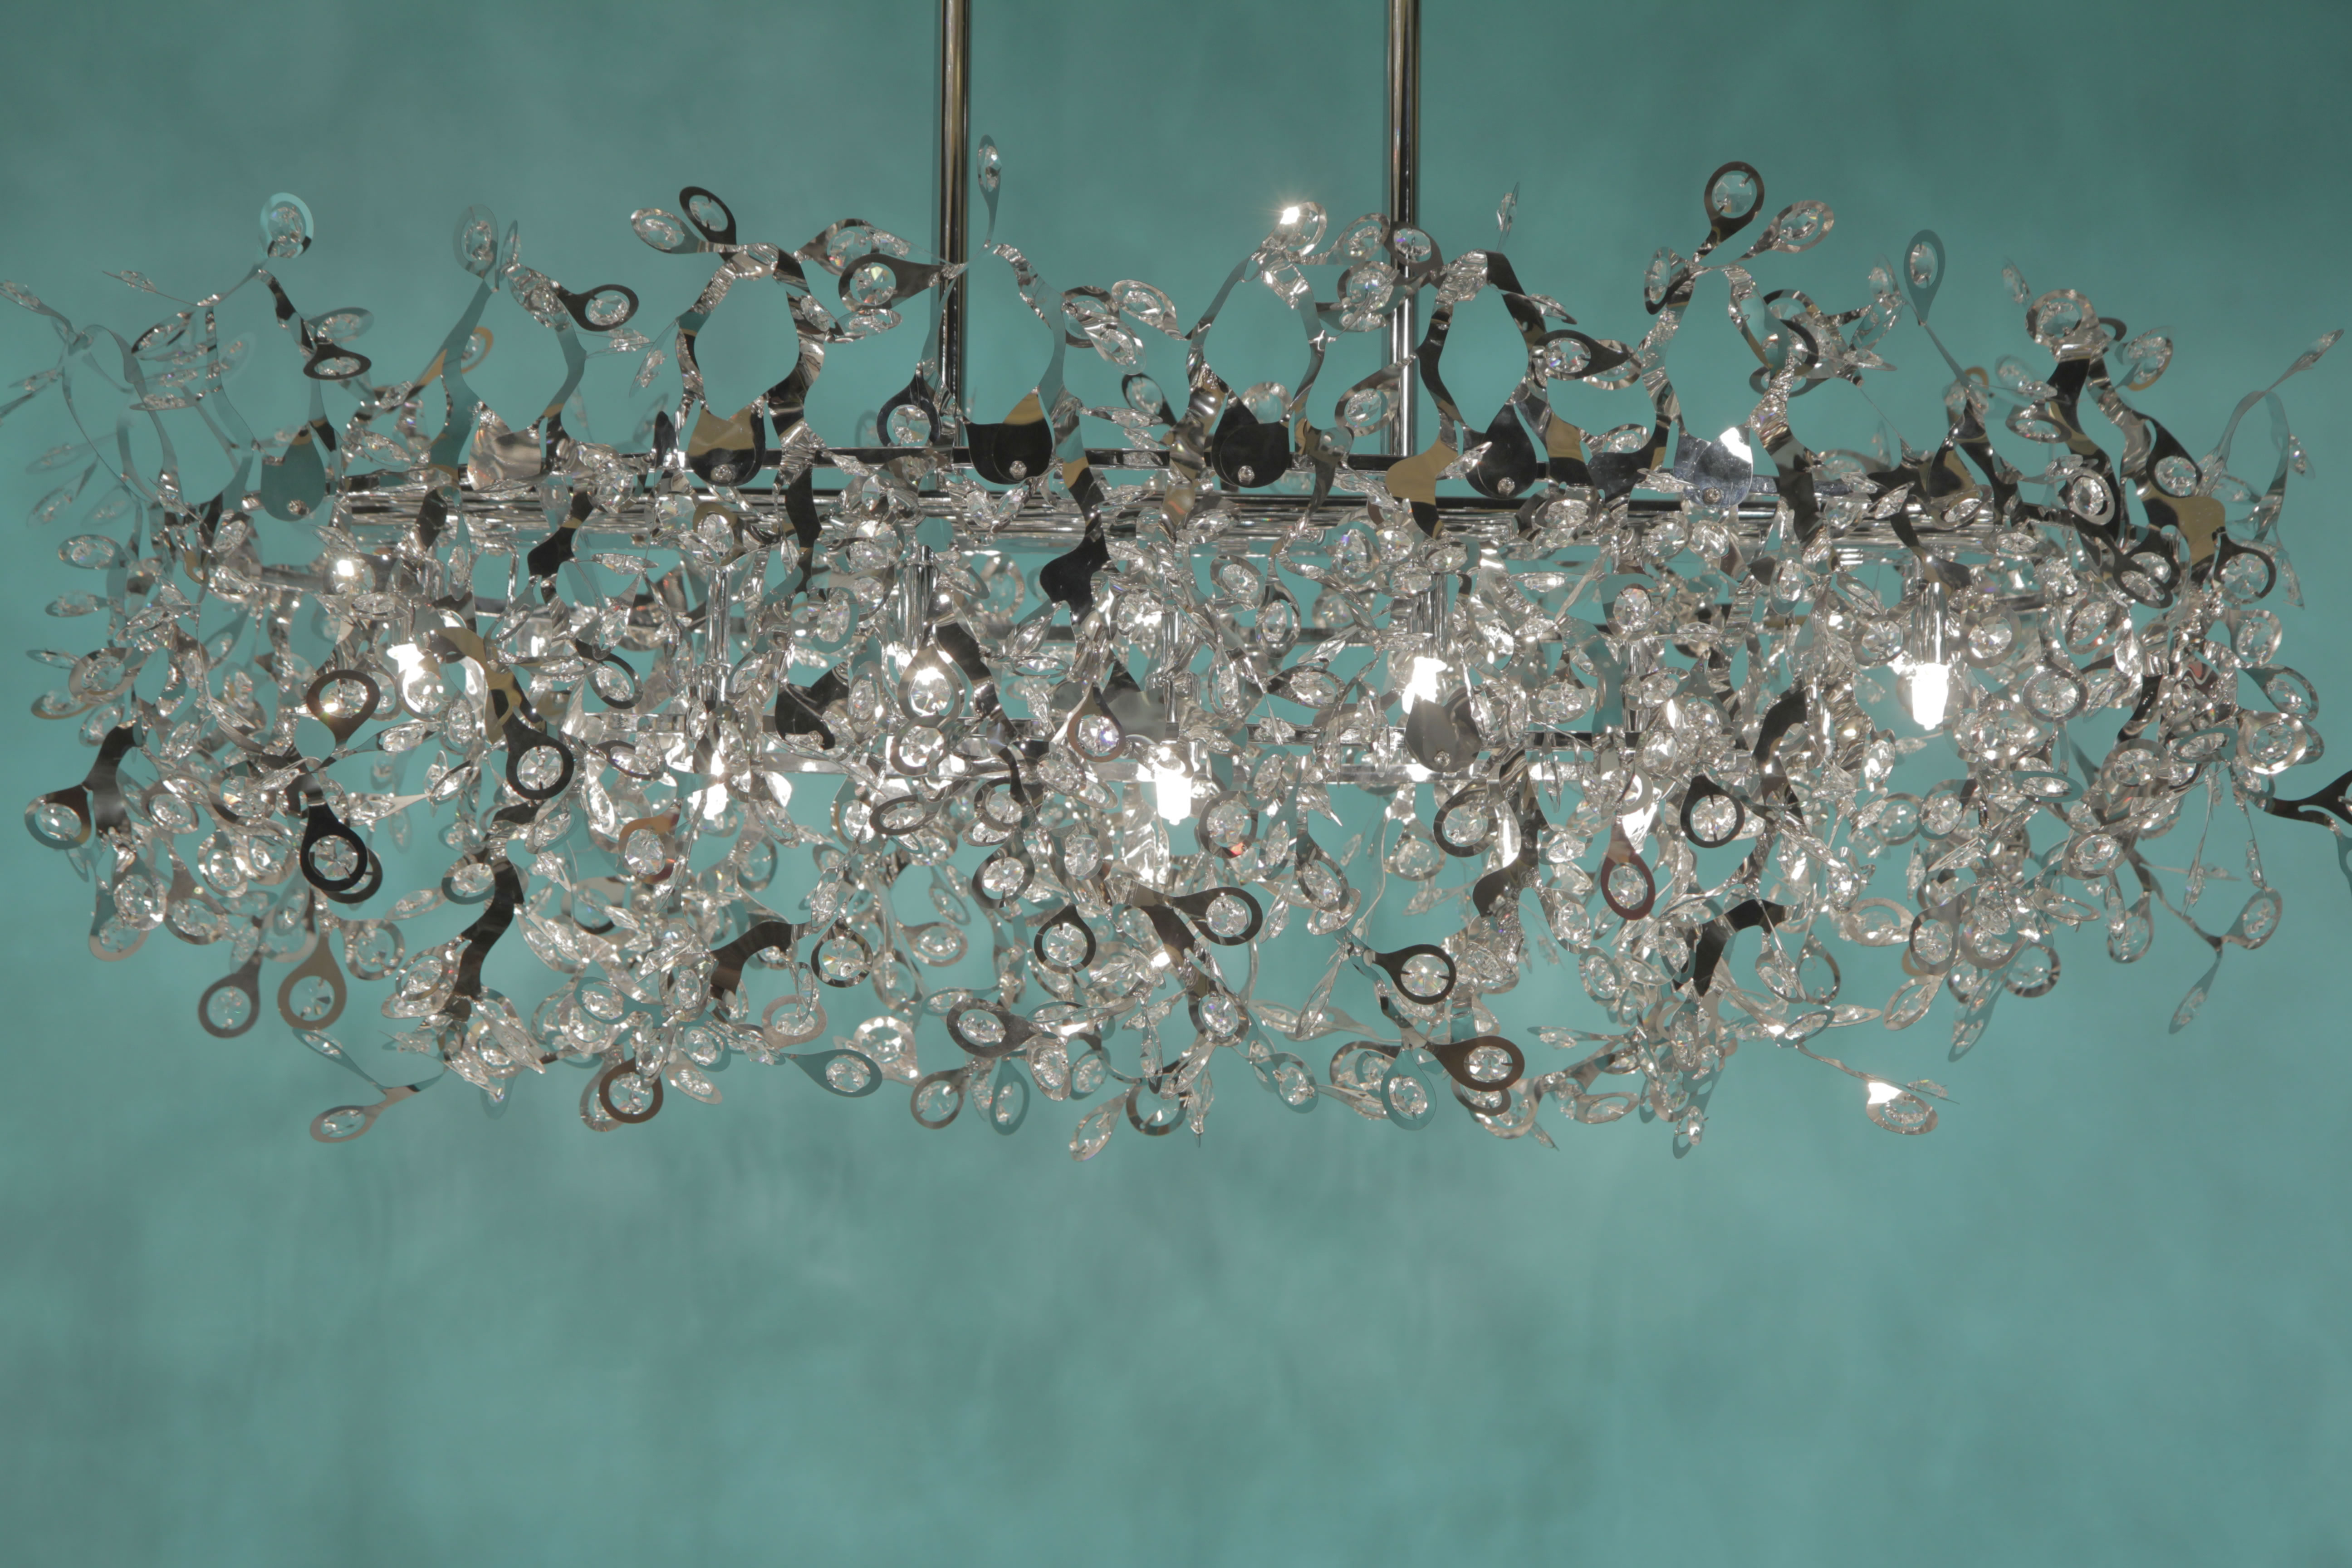 comet lighting. Comet Lighting. 7-light Pendant Lighting H